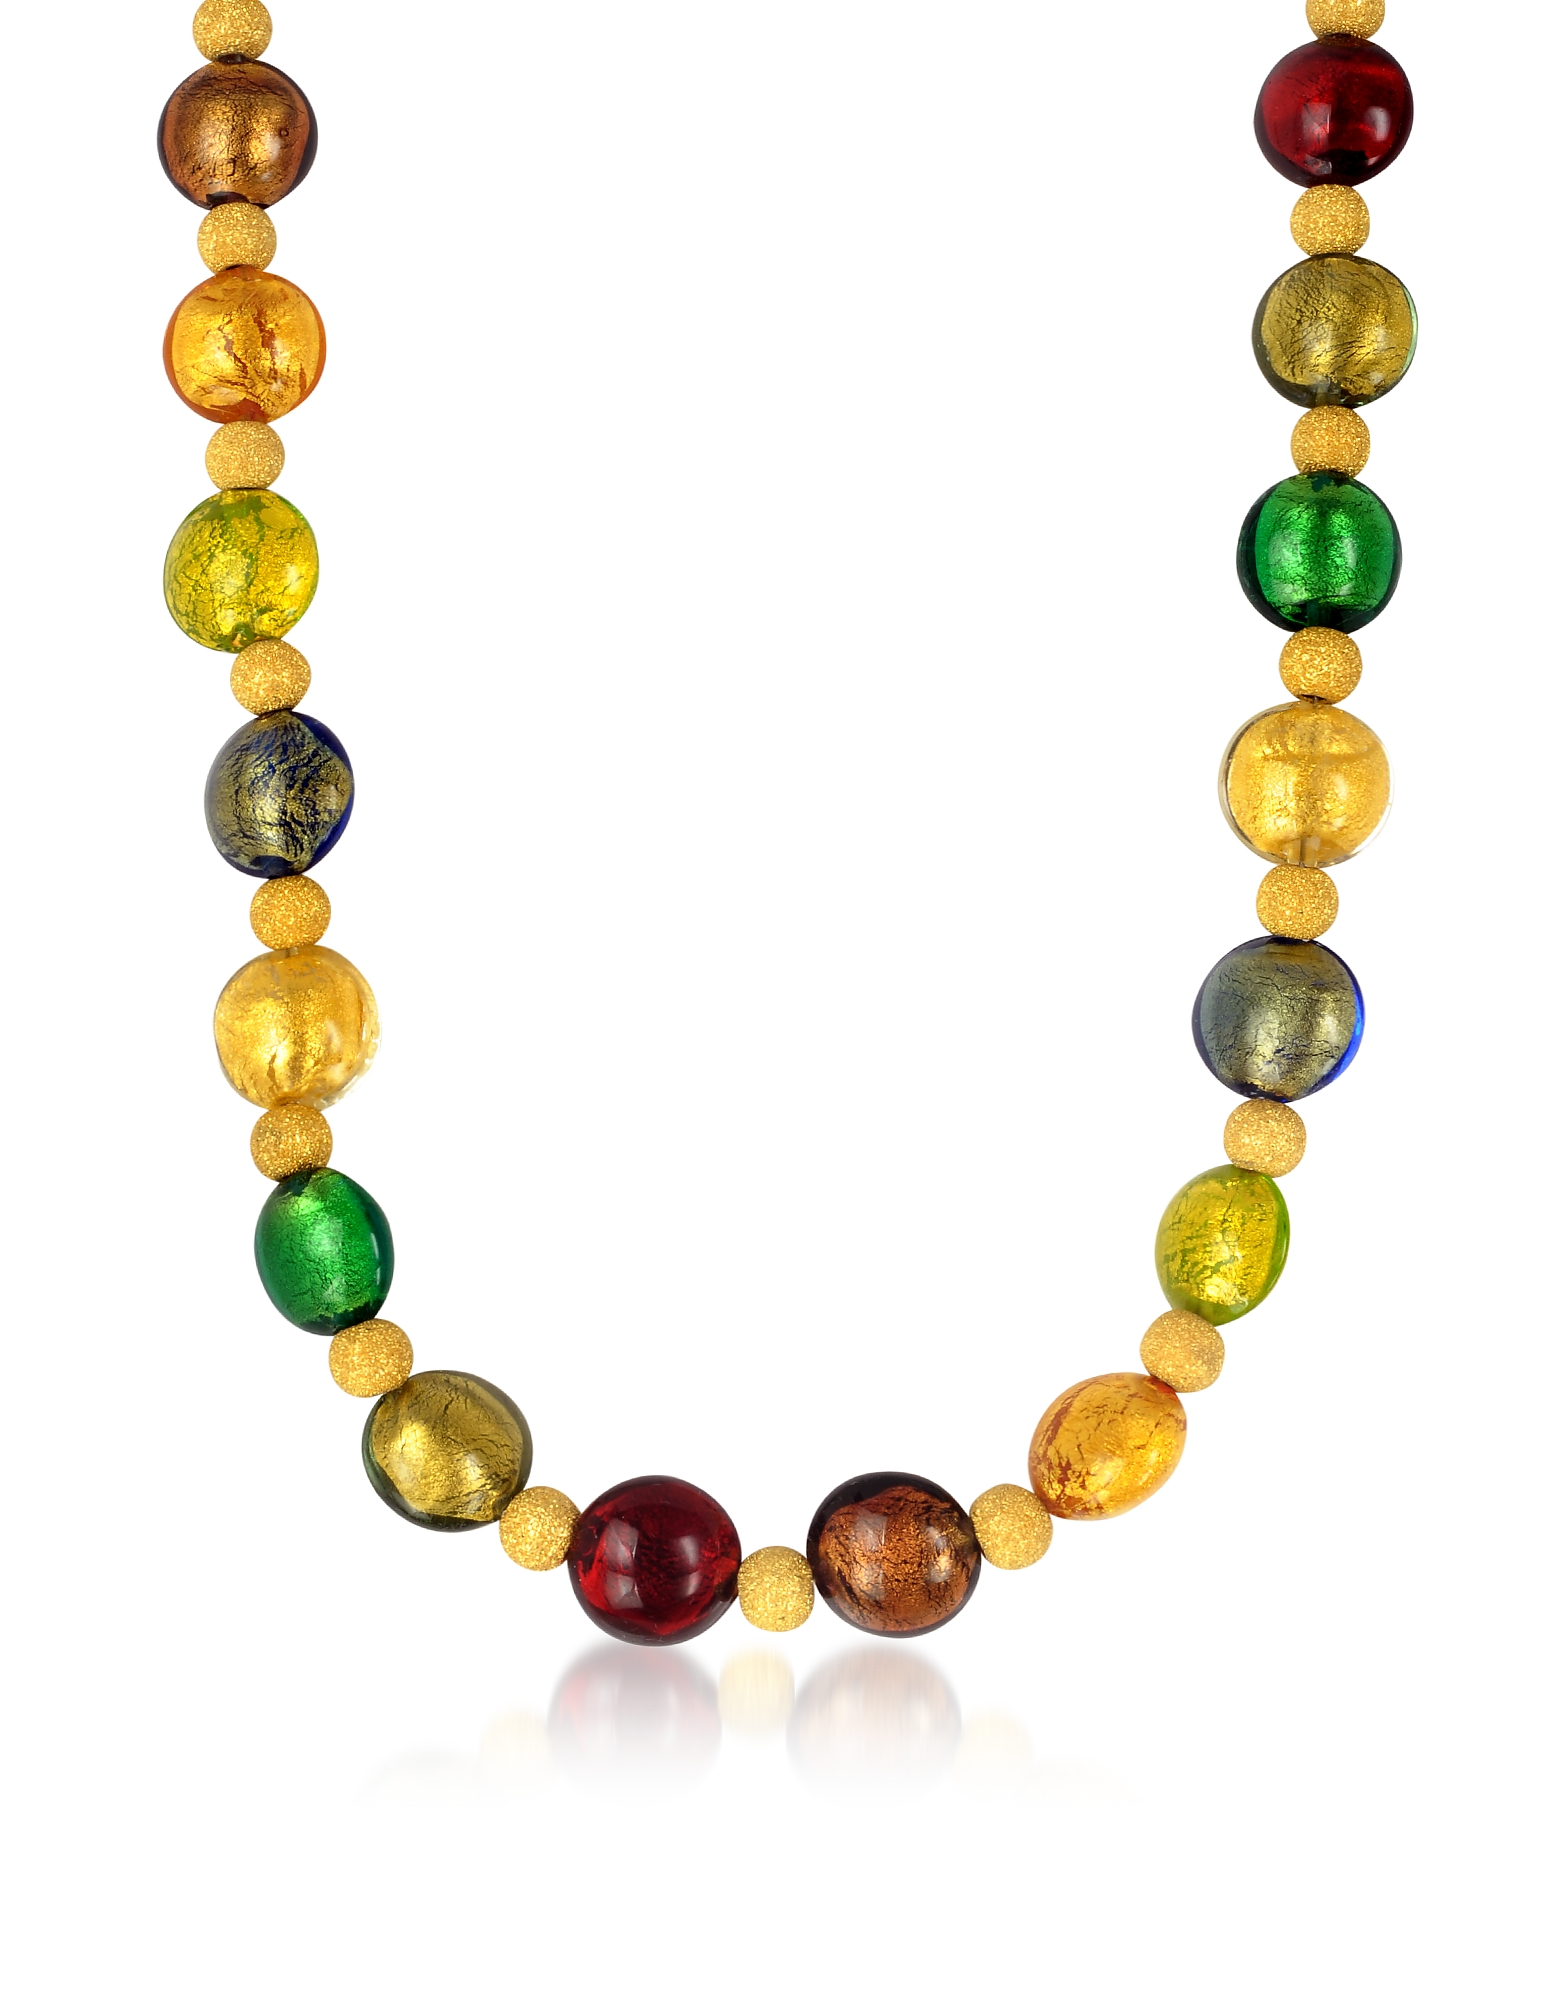 Antica Murrina Necklaces, Manuela - Multi-Color Murano Glass and Sterling Silver Necklace